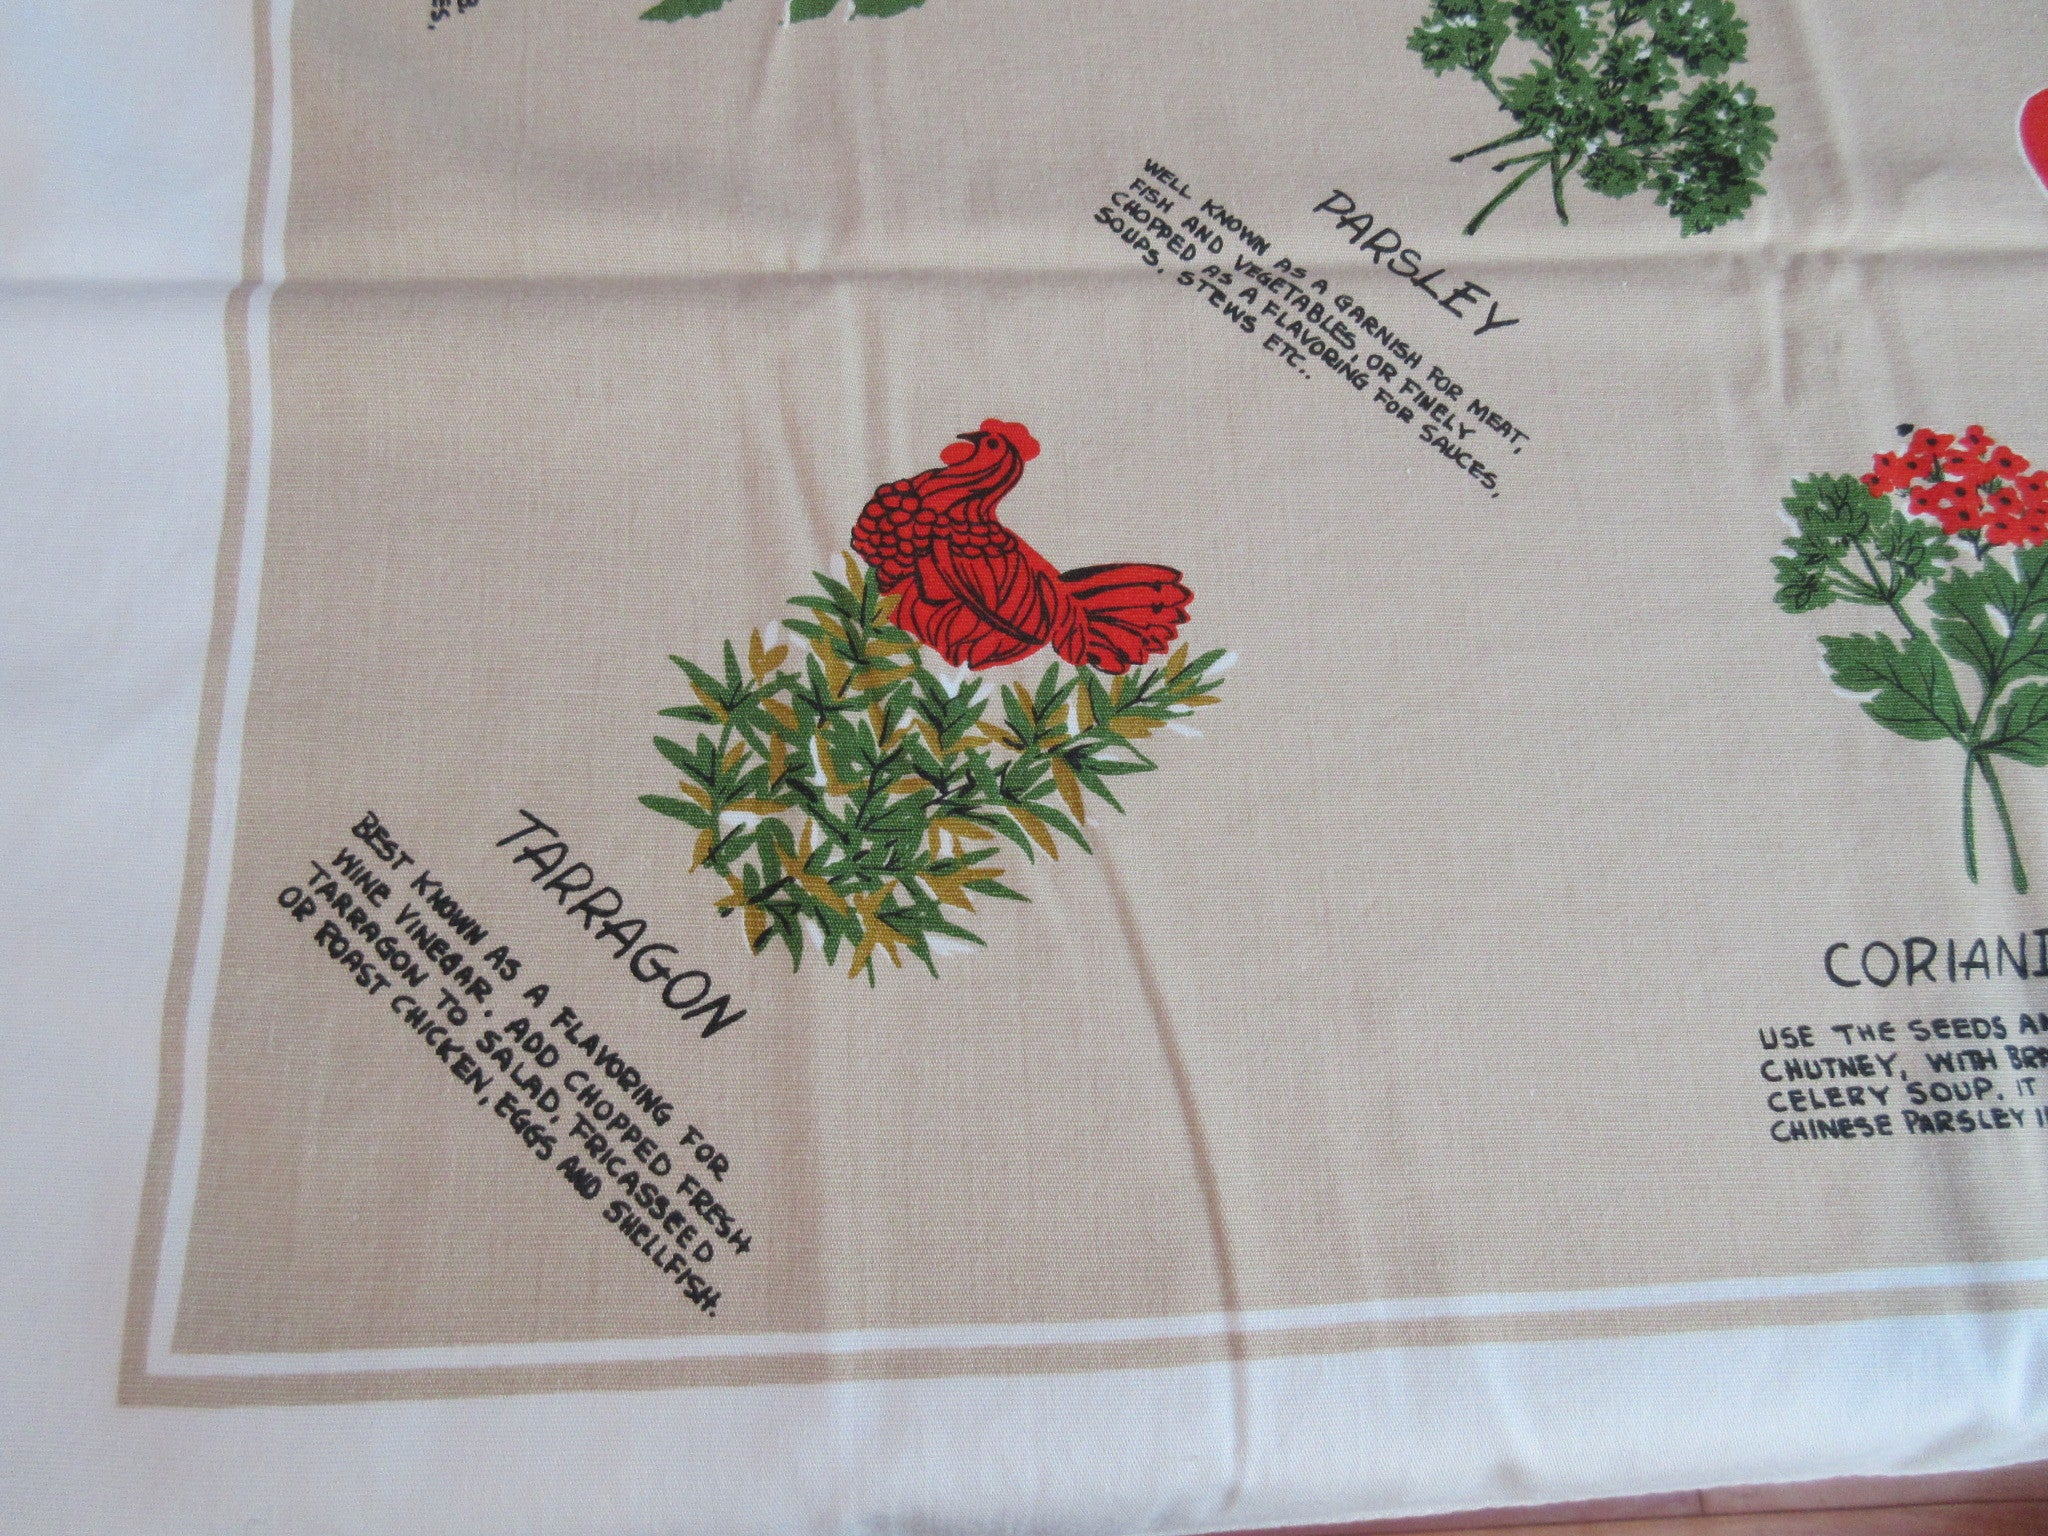 Cooking Herbs Herbal Information on Tan Novelty Vintage Printed Tablecloth (52 X 48)